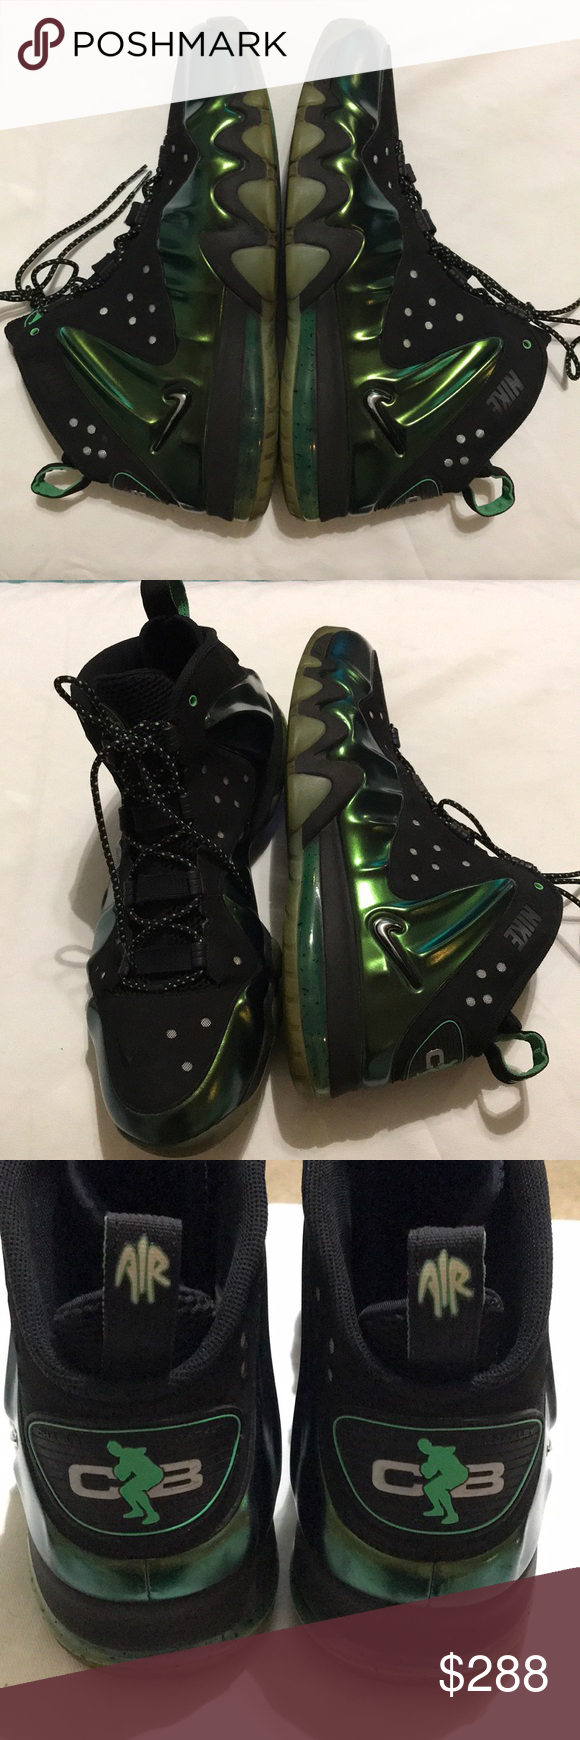 huge selection of 90b90 82c3c Nike 14 Barkley Posite Max eggplant Nice Charles Barkley Nike shoes Size 14  Posite Max Eggplant Very good to excellent previously owned condition 1723  Nike ...